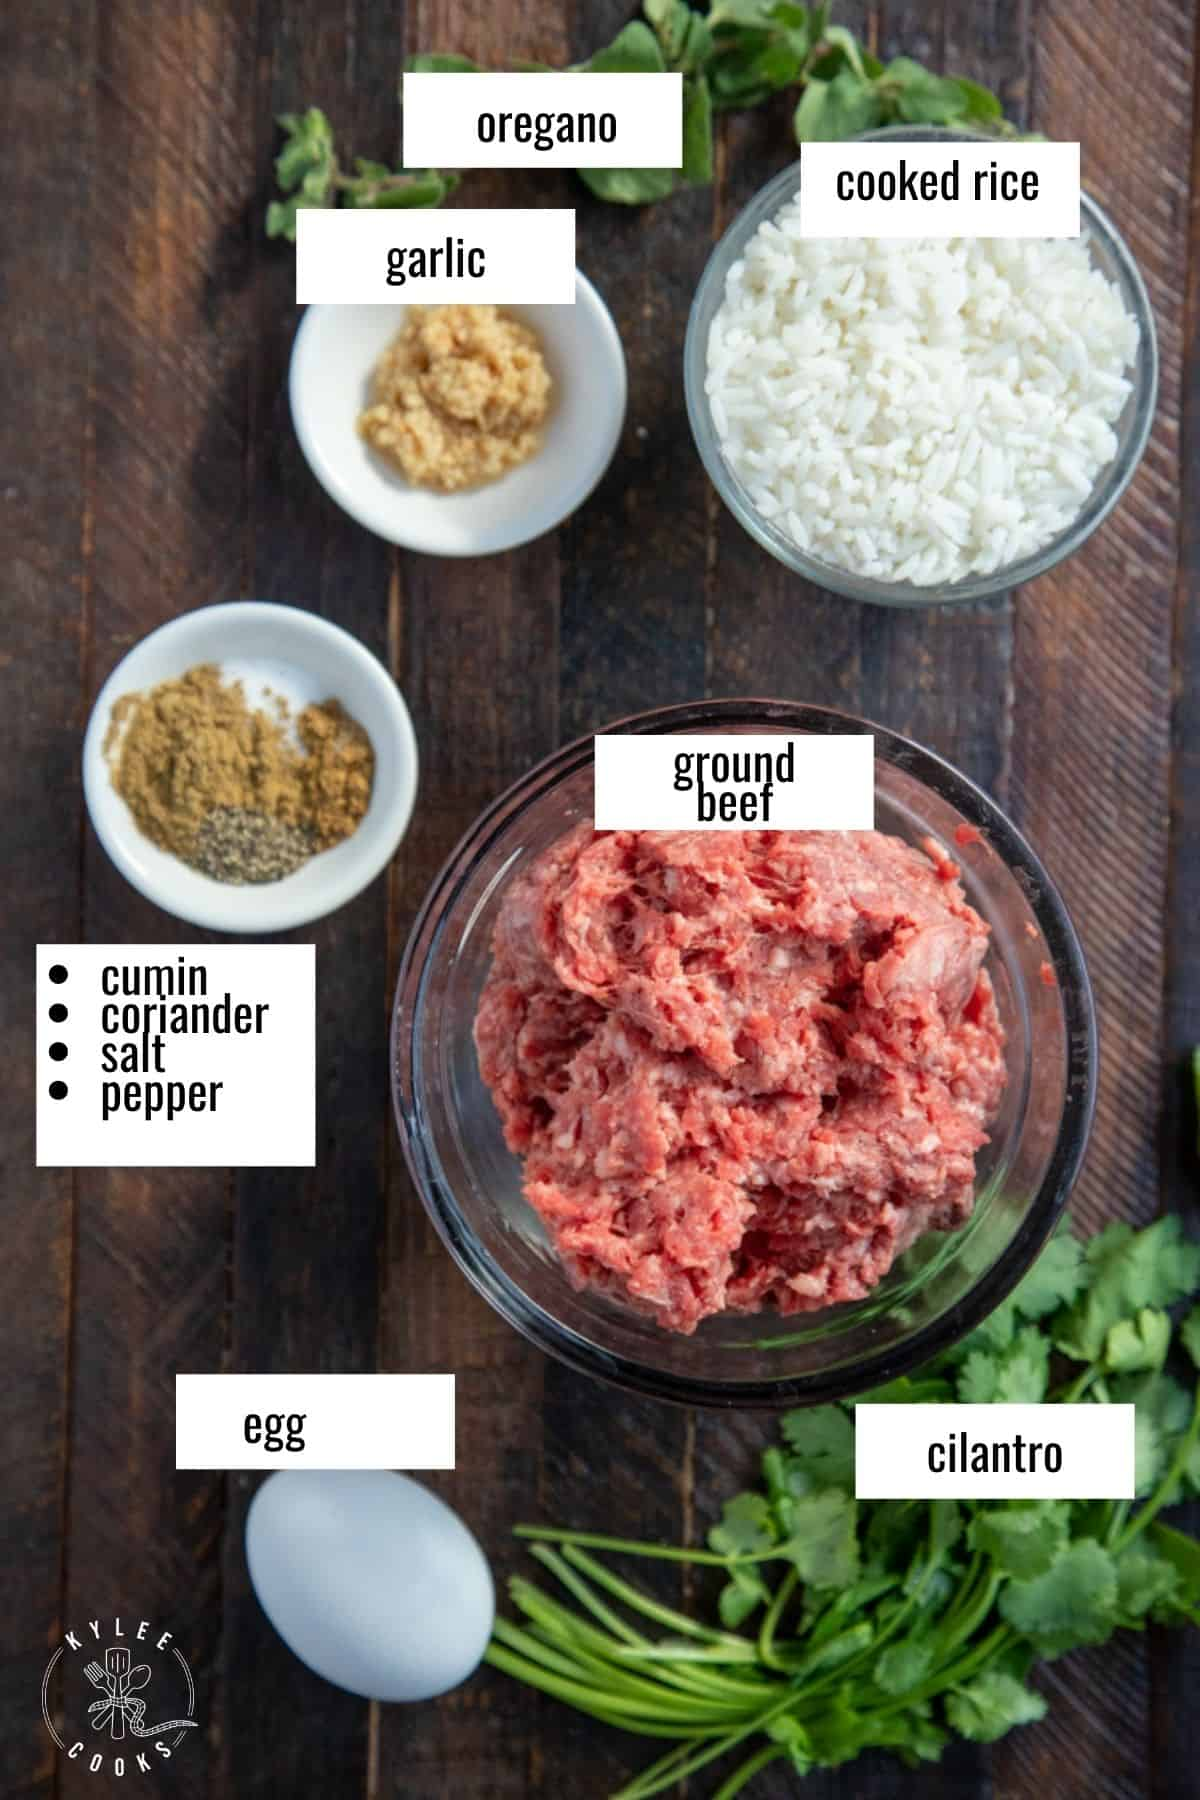 ingredients to make the meatballs for albondigas laid out and labeled